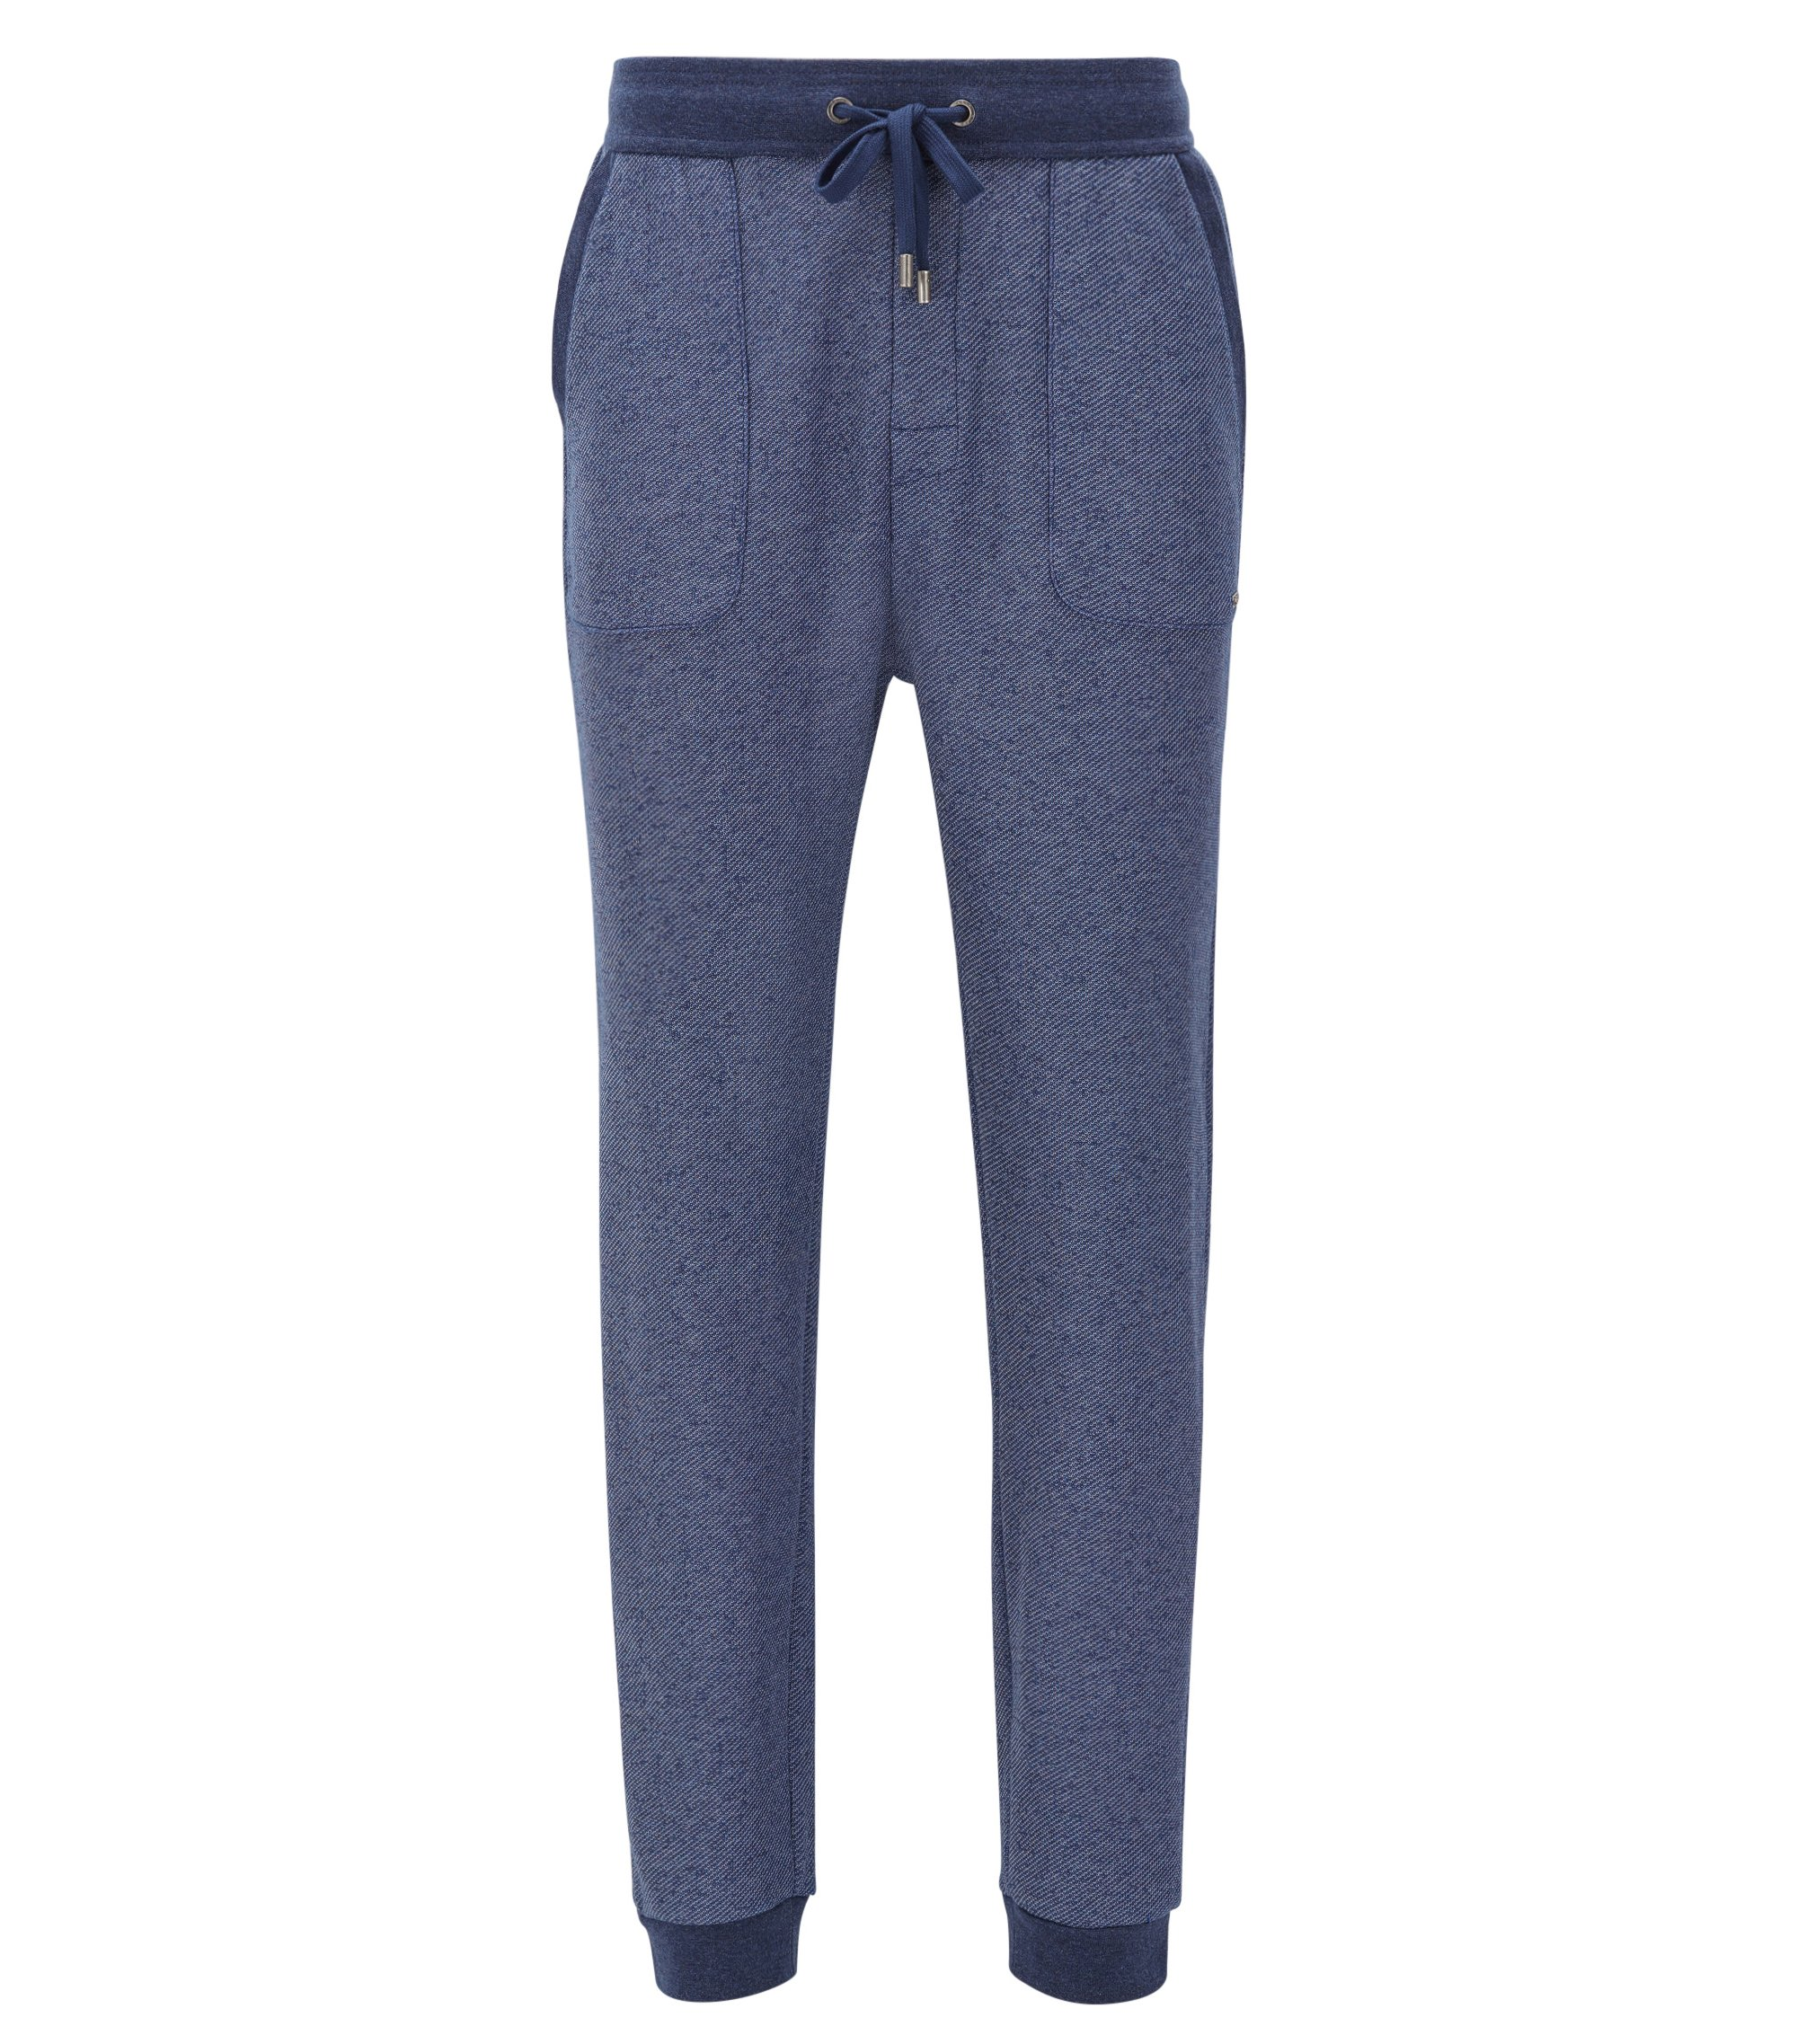 Jersey Sweatpants | Long Pant Cuffs, Dark Blue